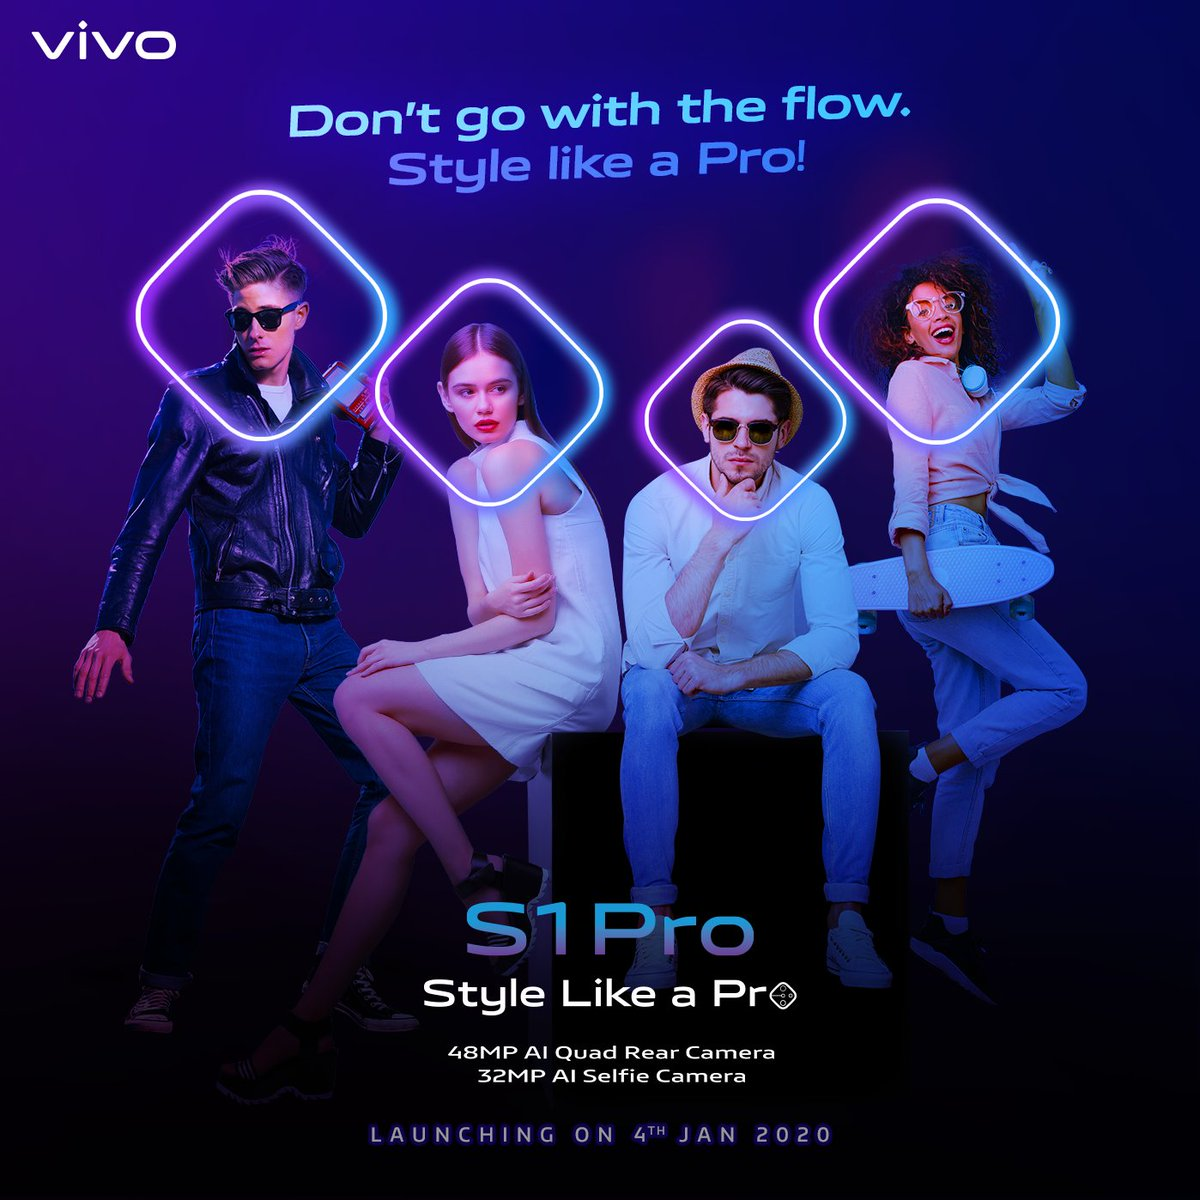 Going with the flow isn't your thing.#StyleLikeAPro with #vivoS1Pro 's diamond shaped 48MP AI Quad Rear Camera & 32MP AI Selfie Camera.Launching tomorrow. Know more - http://bit.ly/2ZAvQrp